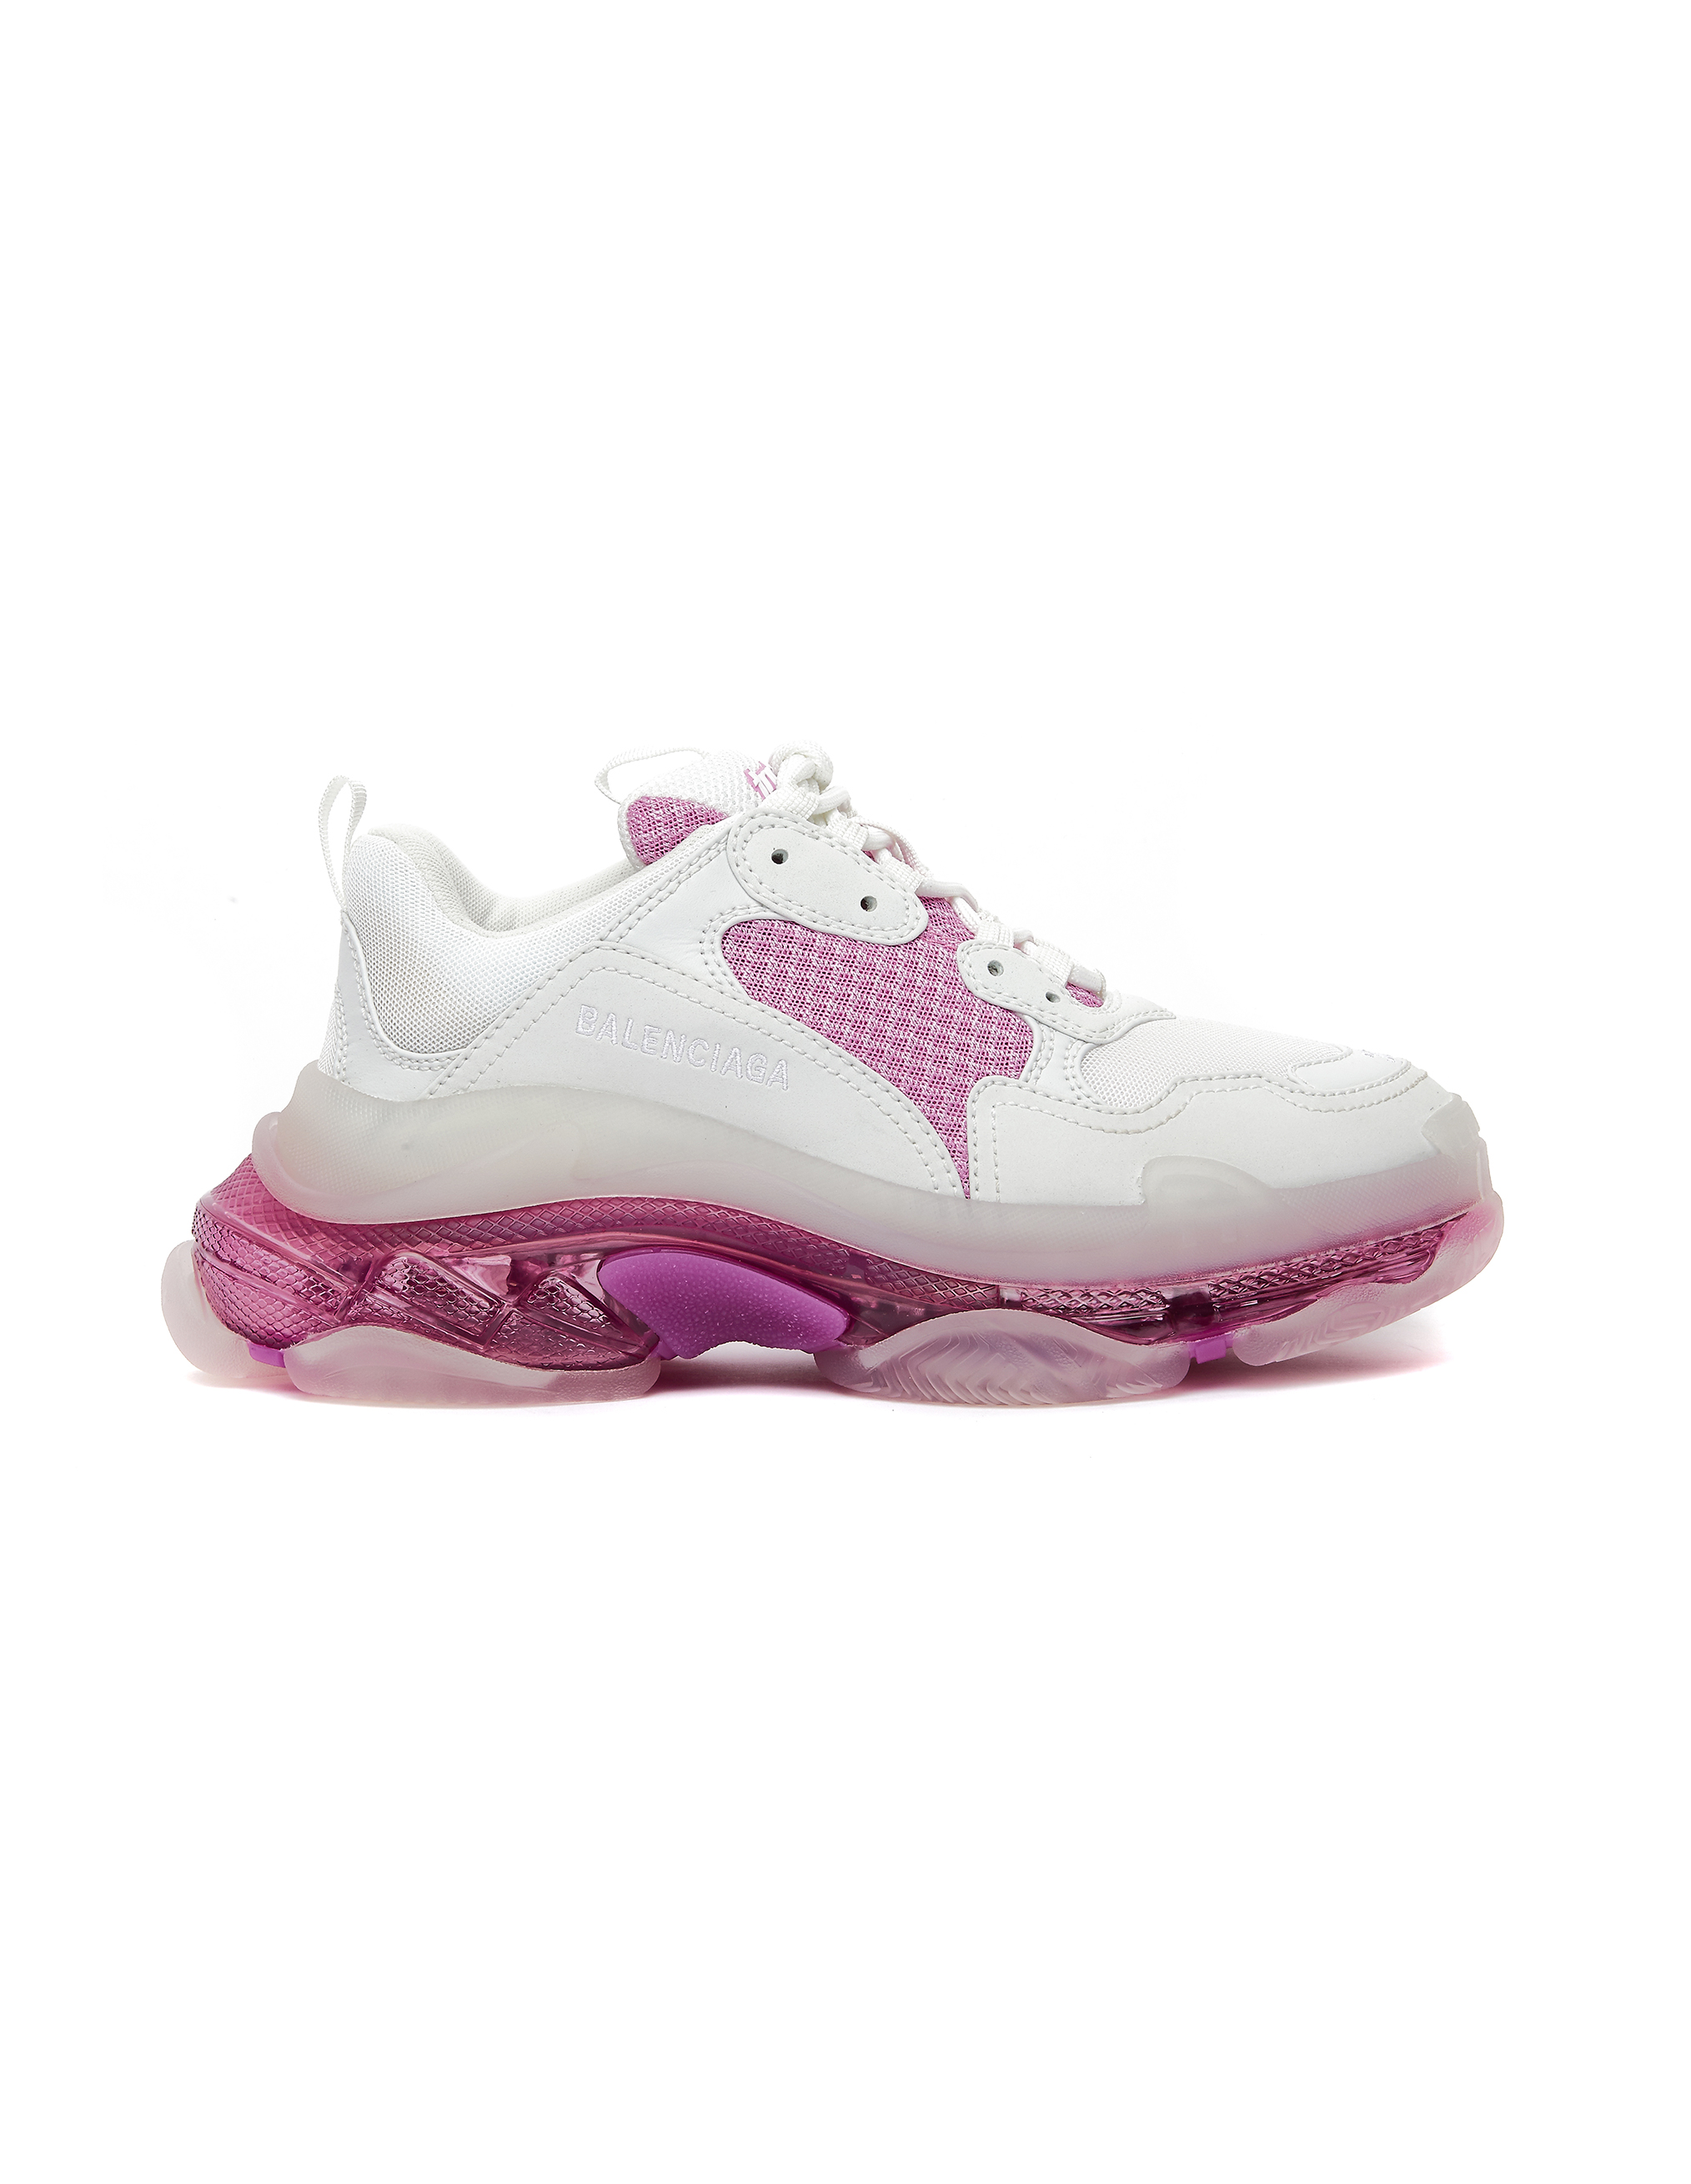 Balenciaga White & Pink Triple S Clear Sole Sneakers